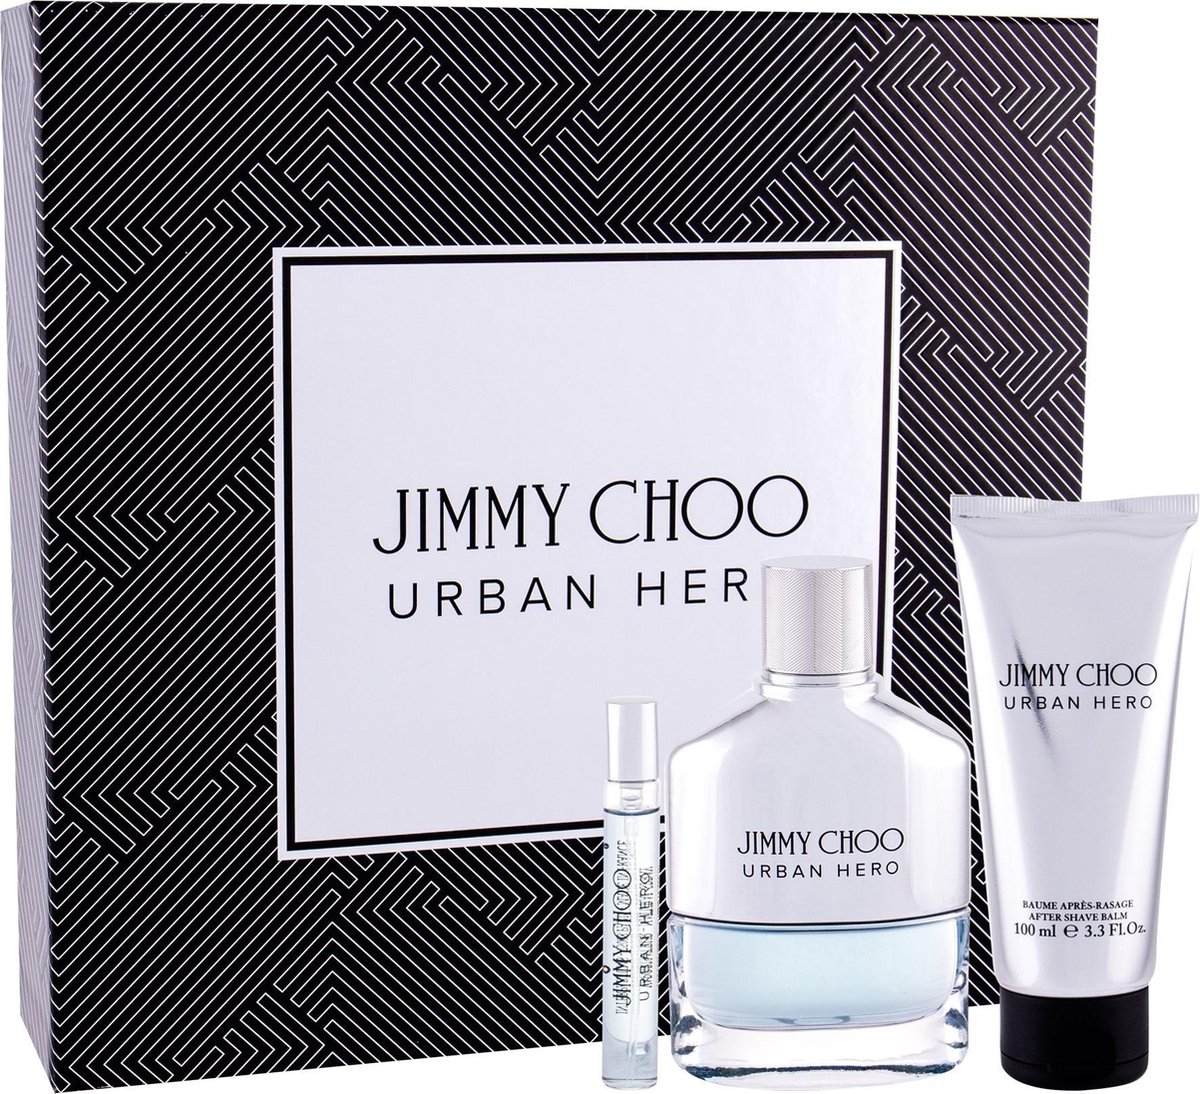 Jimmy Choo Urban Hero 100ml Eau De Parfum